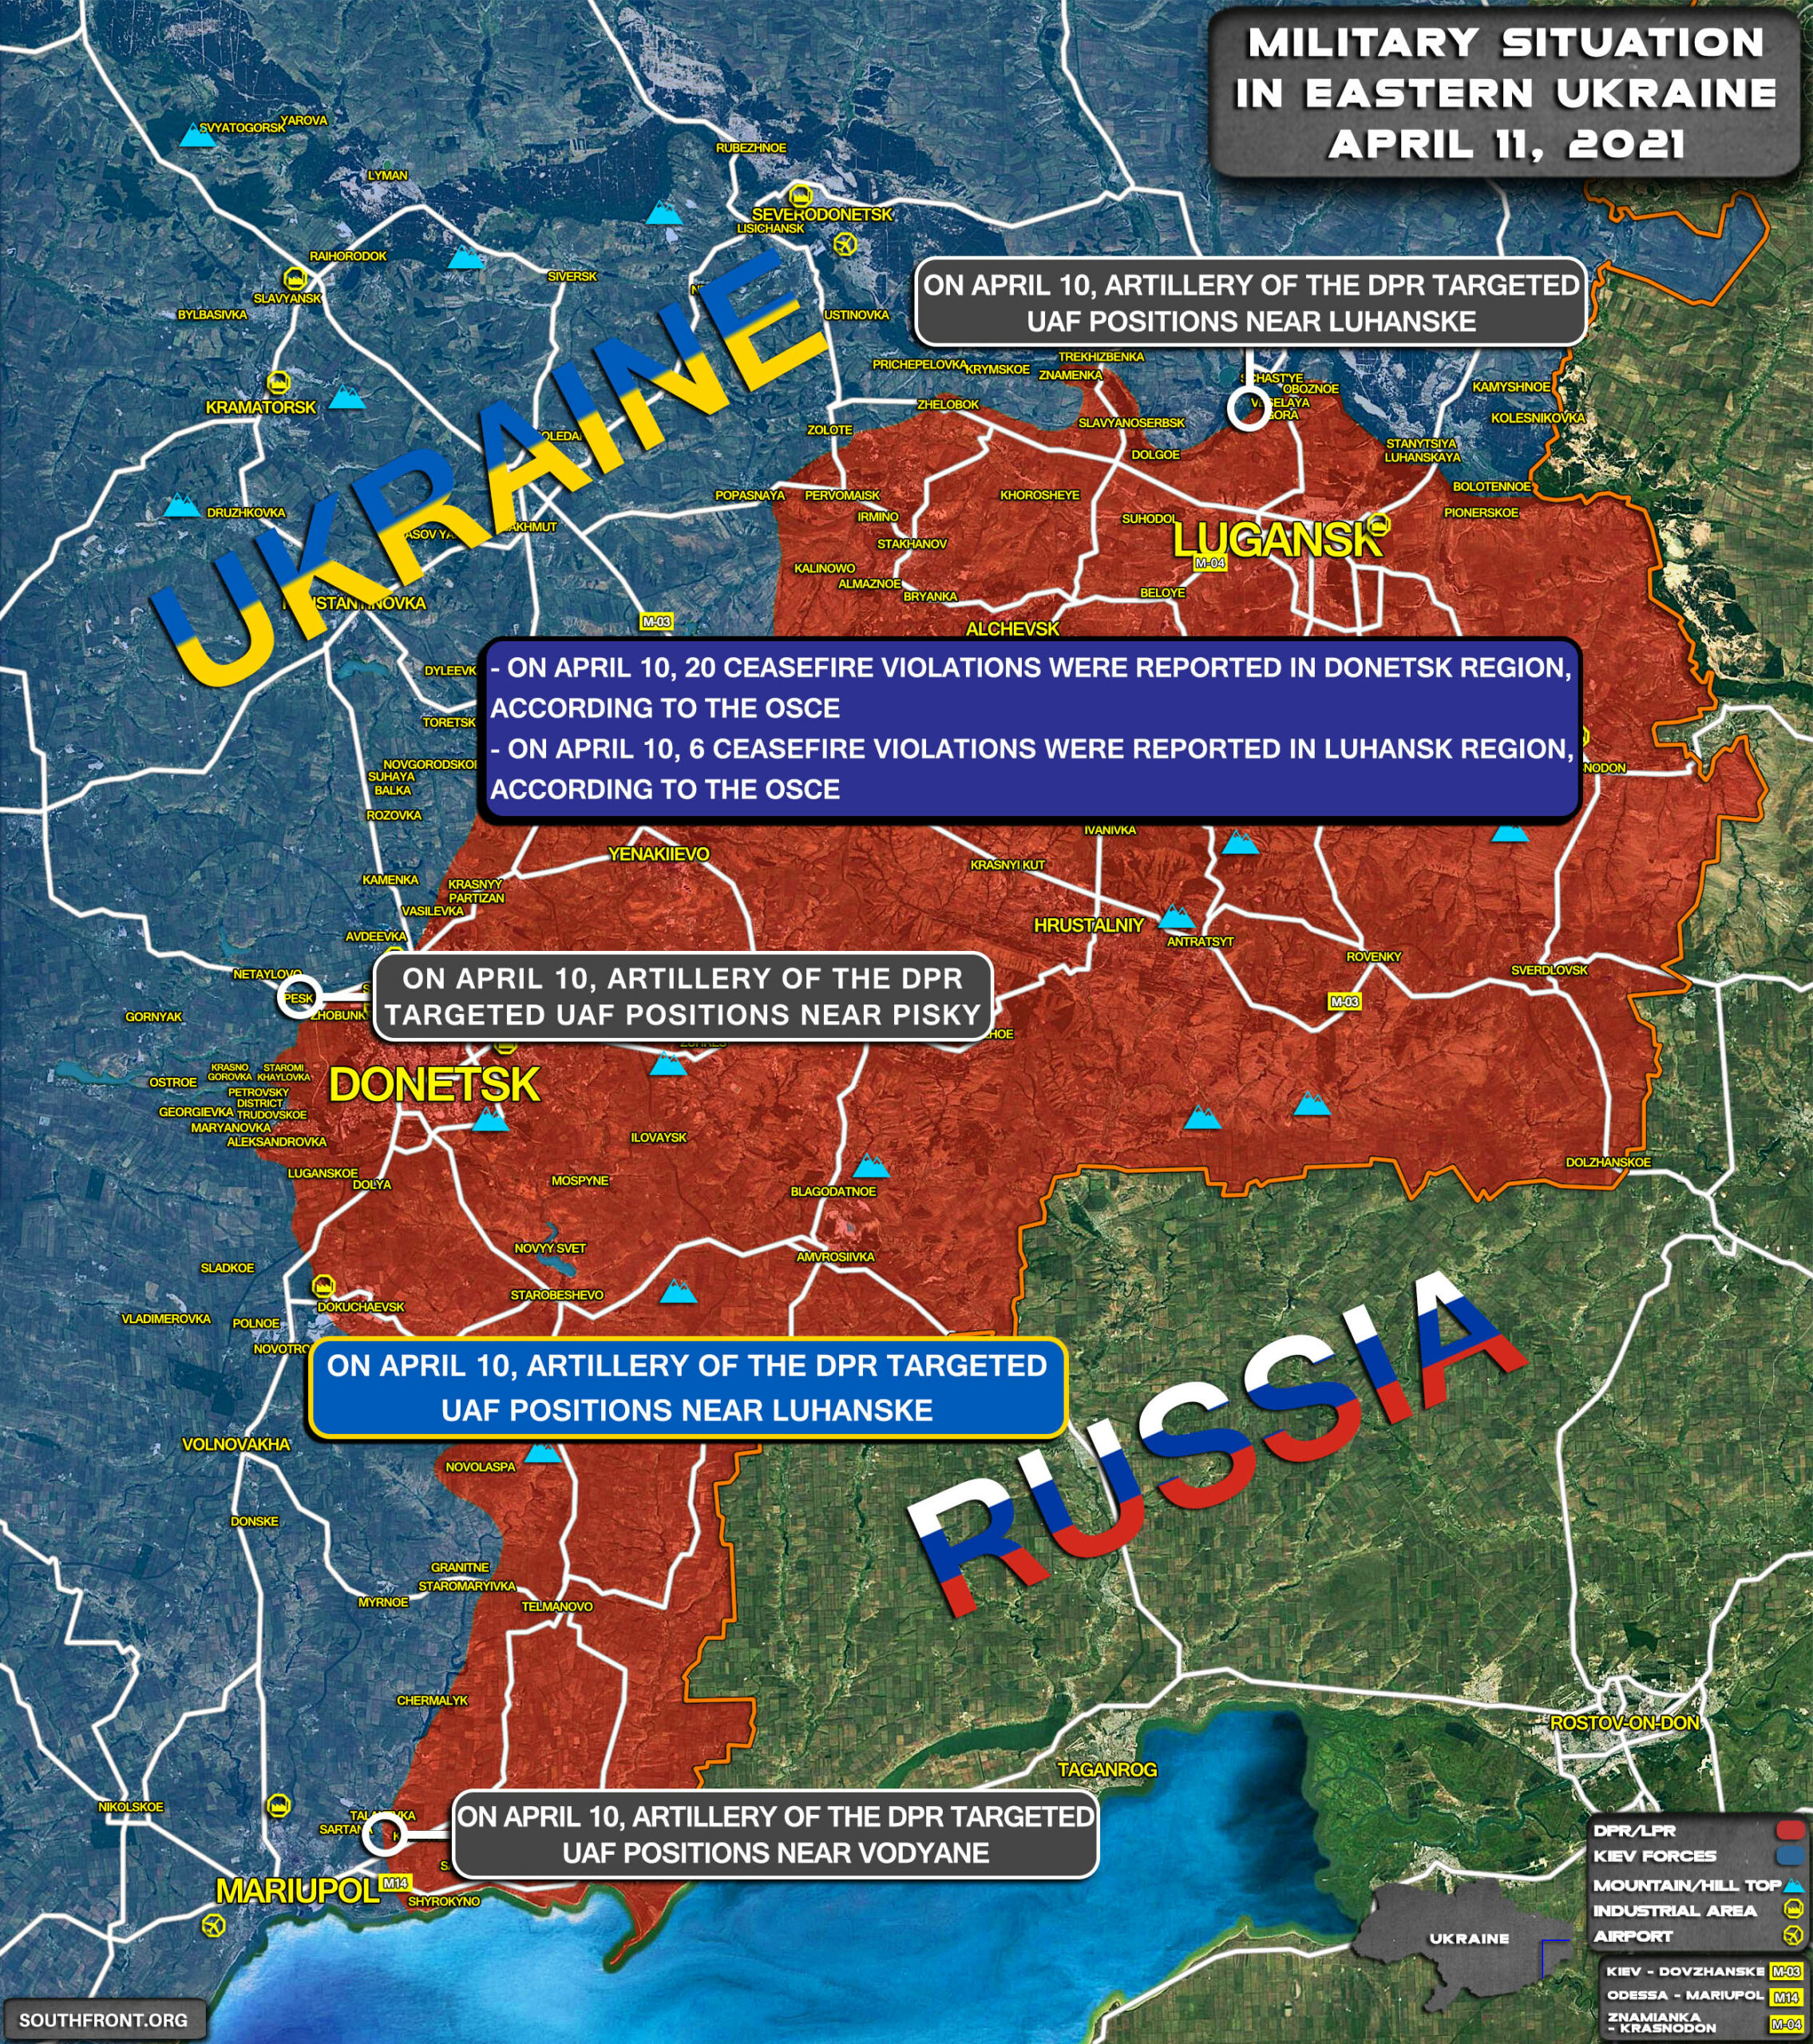 Military Situation In Eastern Ukraine On April 11, 2021 (Map Update)